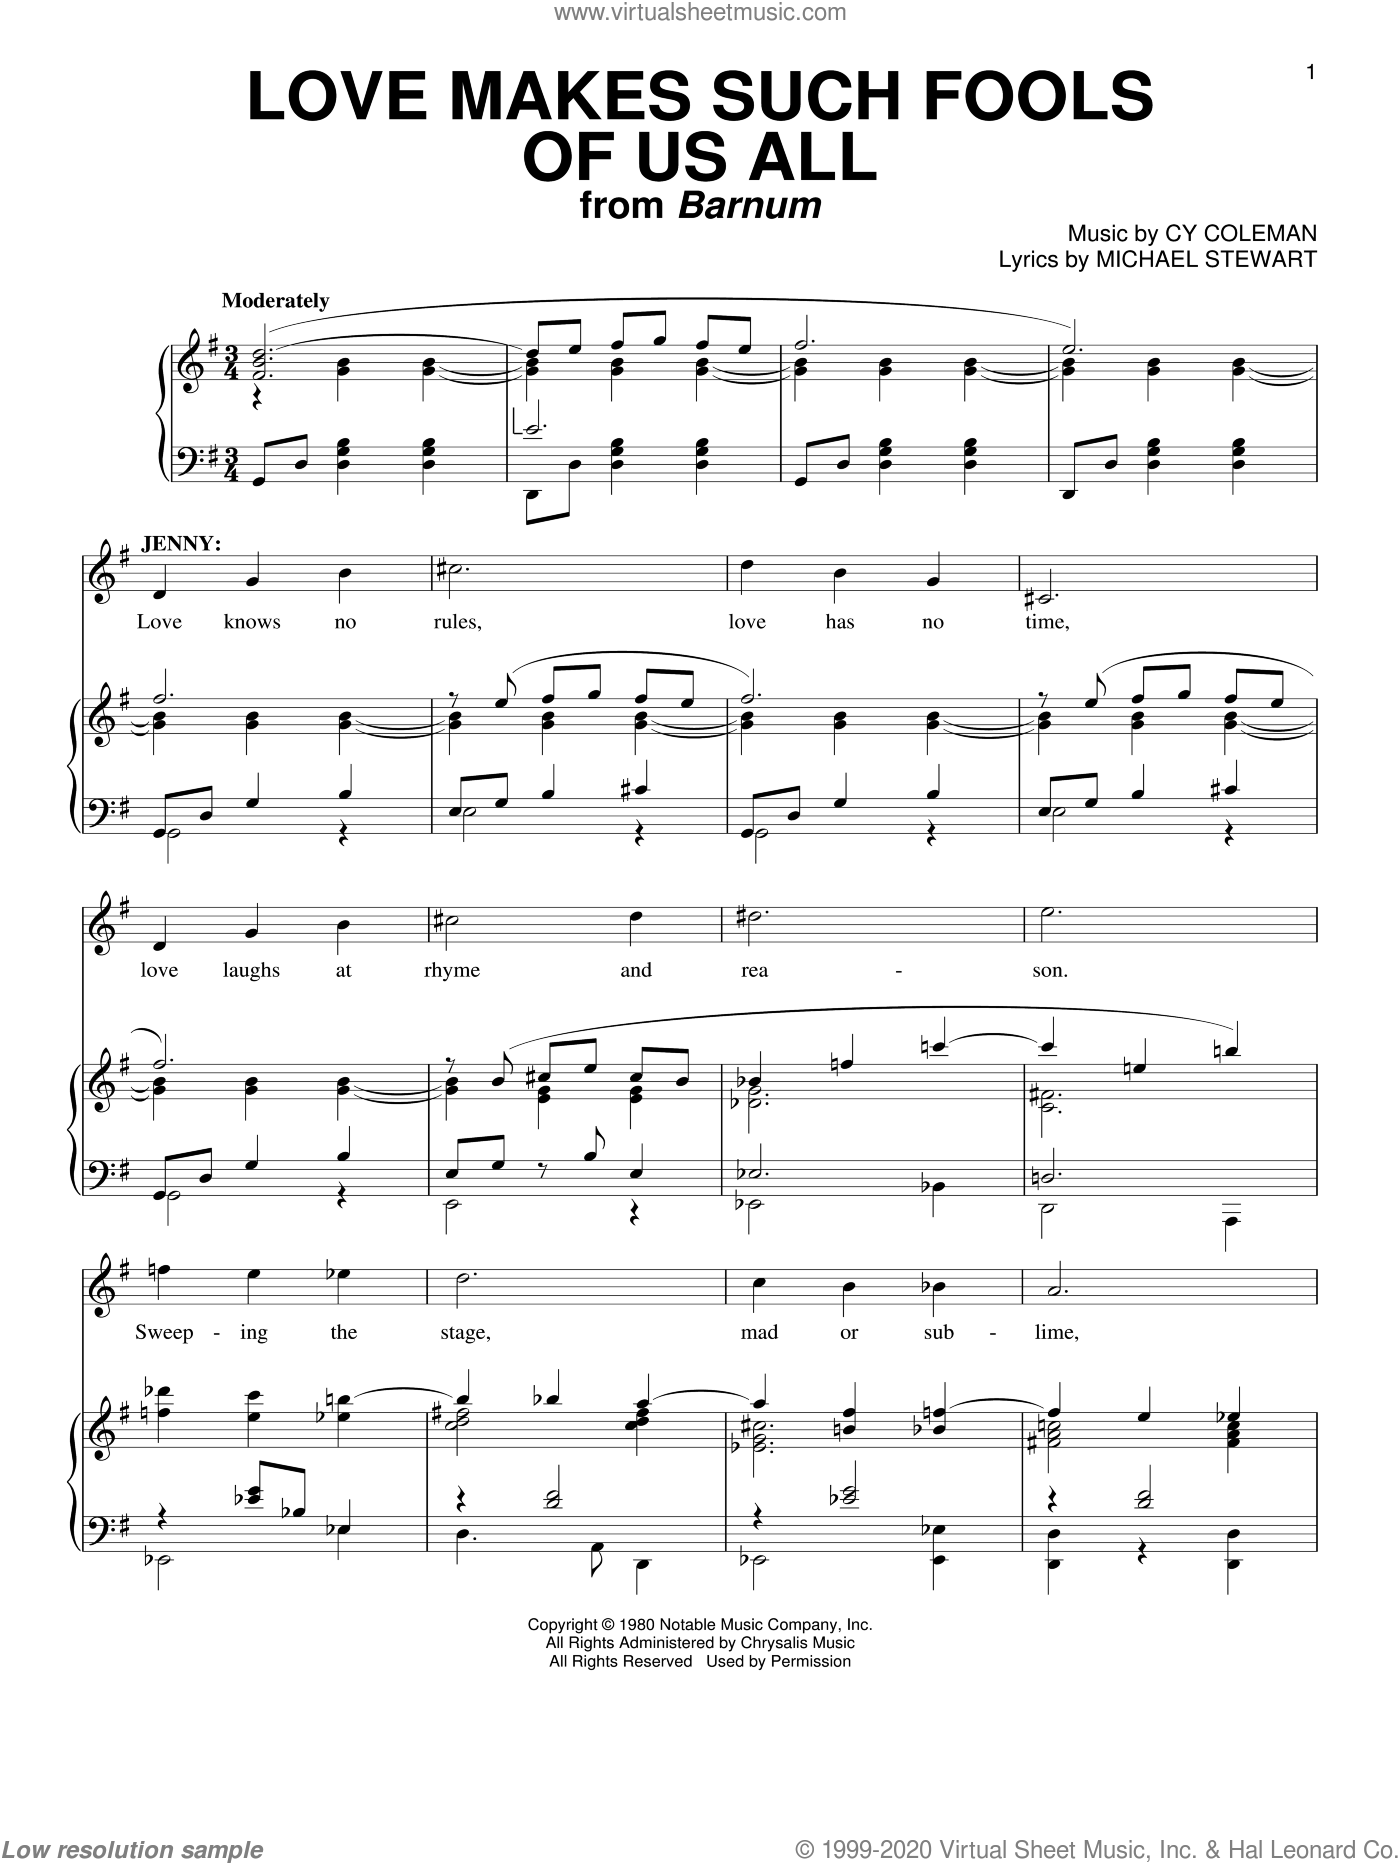 Love Makes Such Fools Of Us All sheet music for voice and piano by Michael Stewart